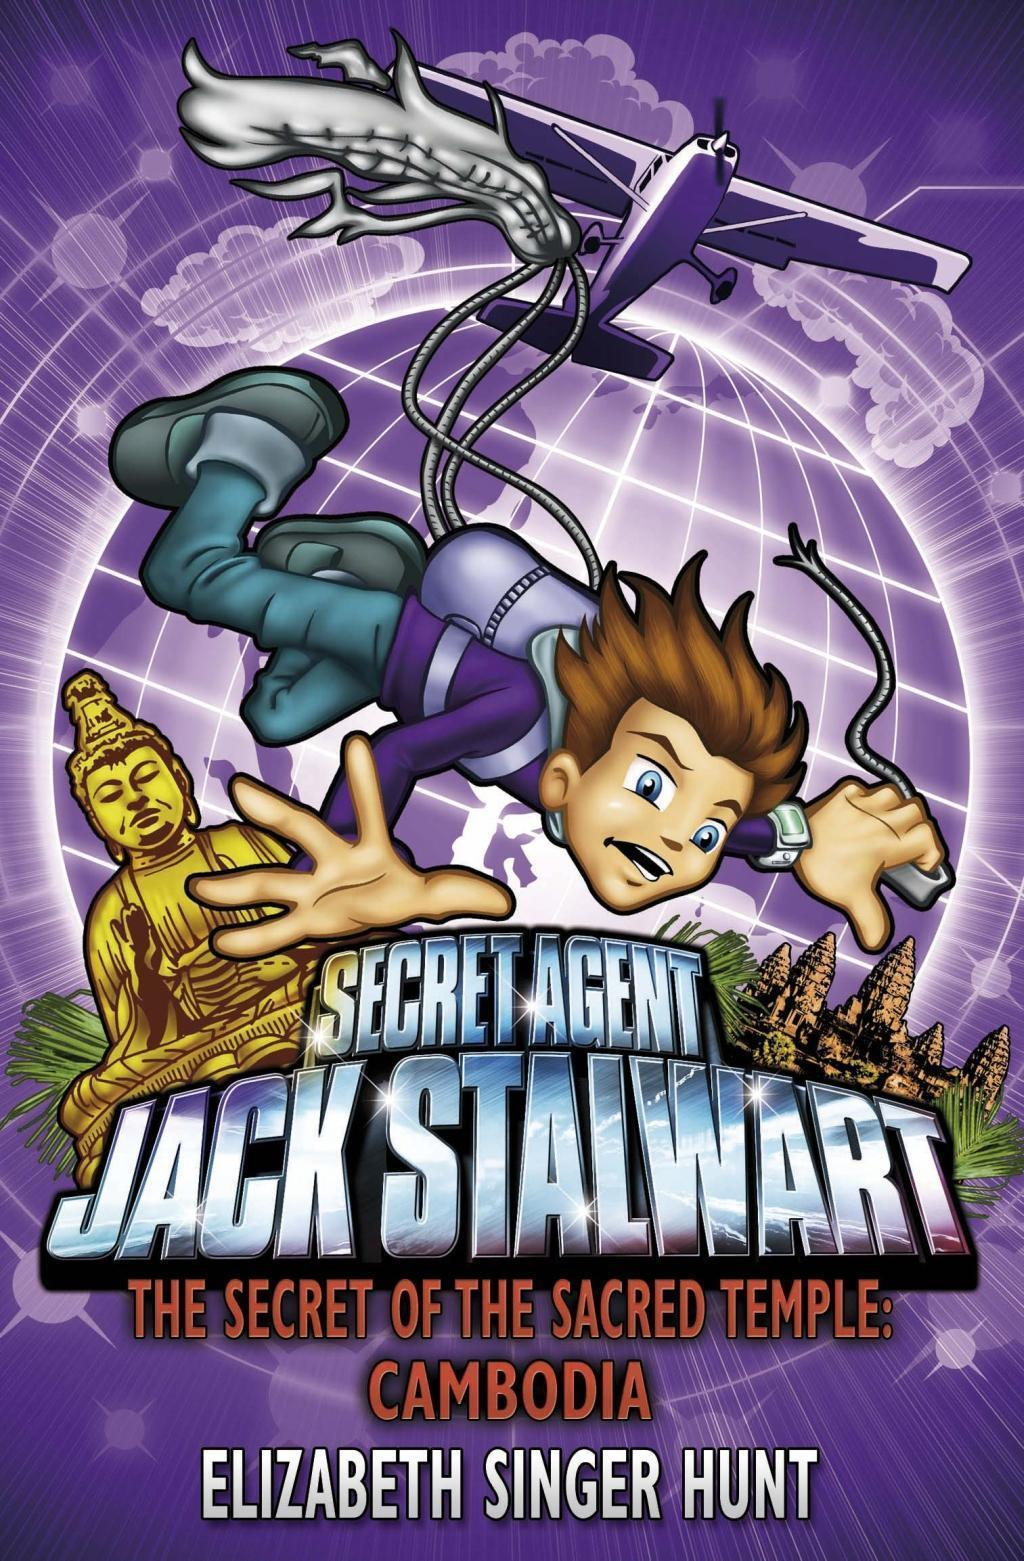 Jack Stalwart: The Secret of the Sacred Temple